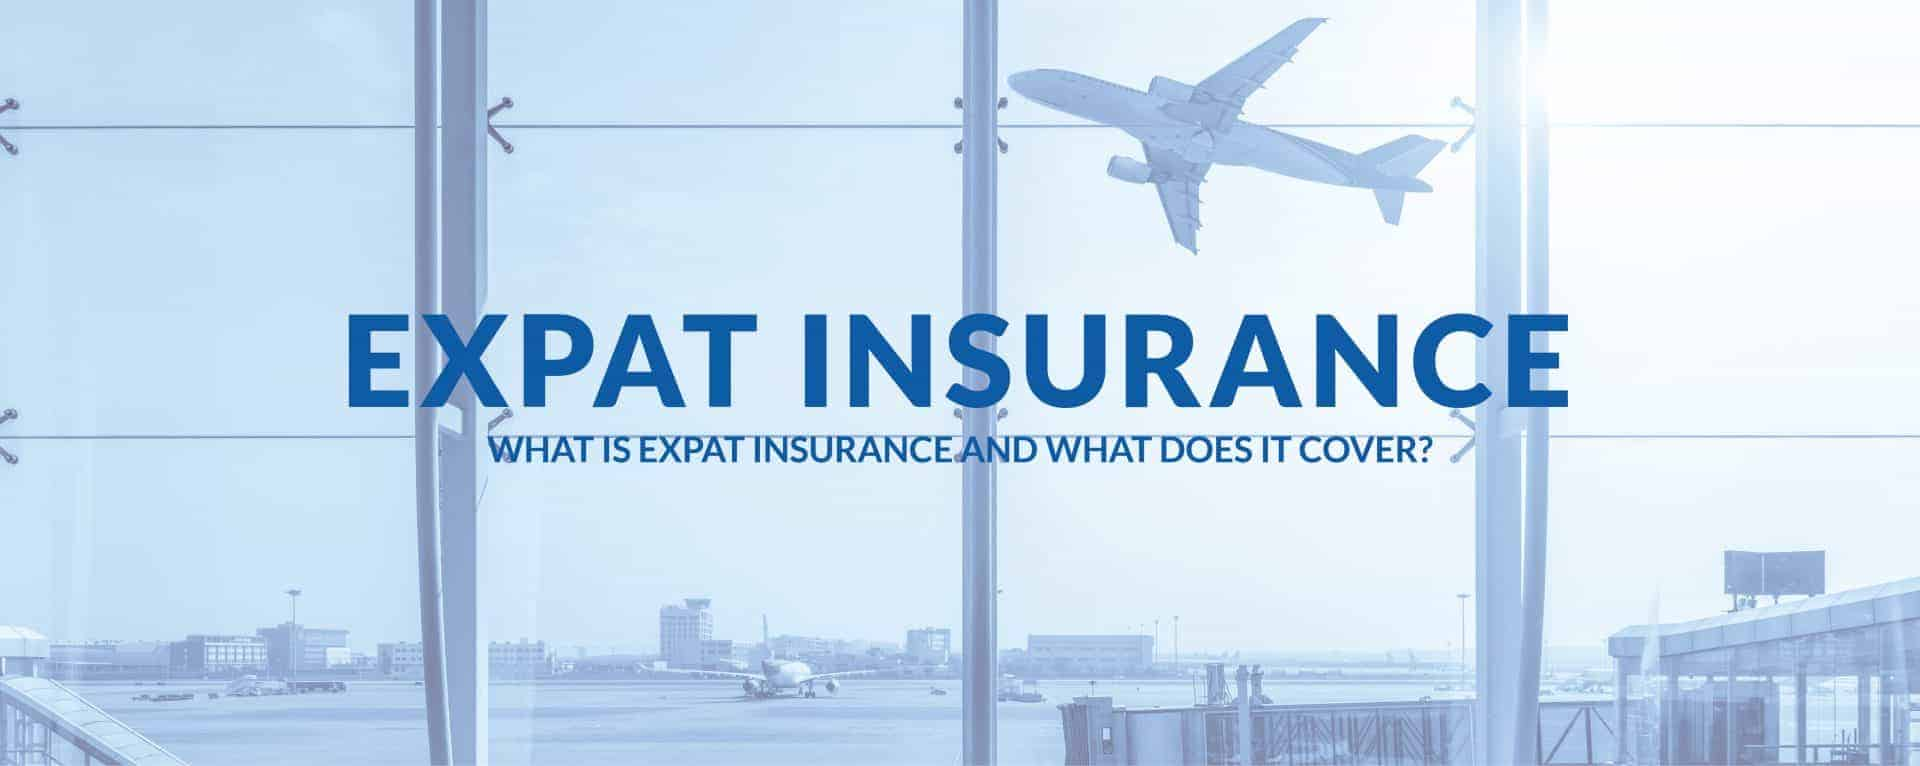 What is Expat Insurance and what does it cover